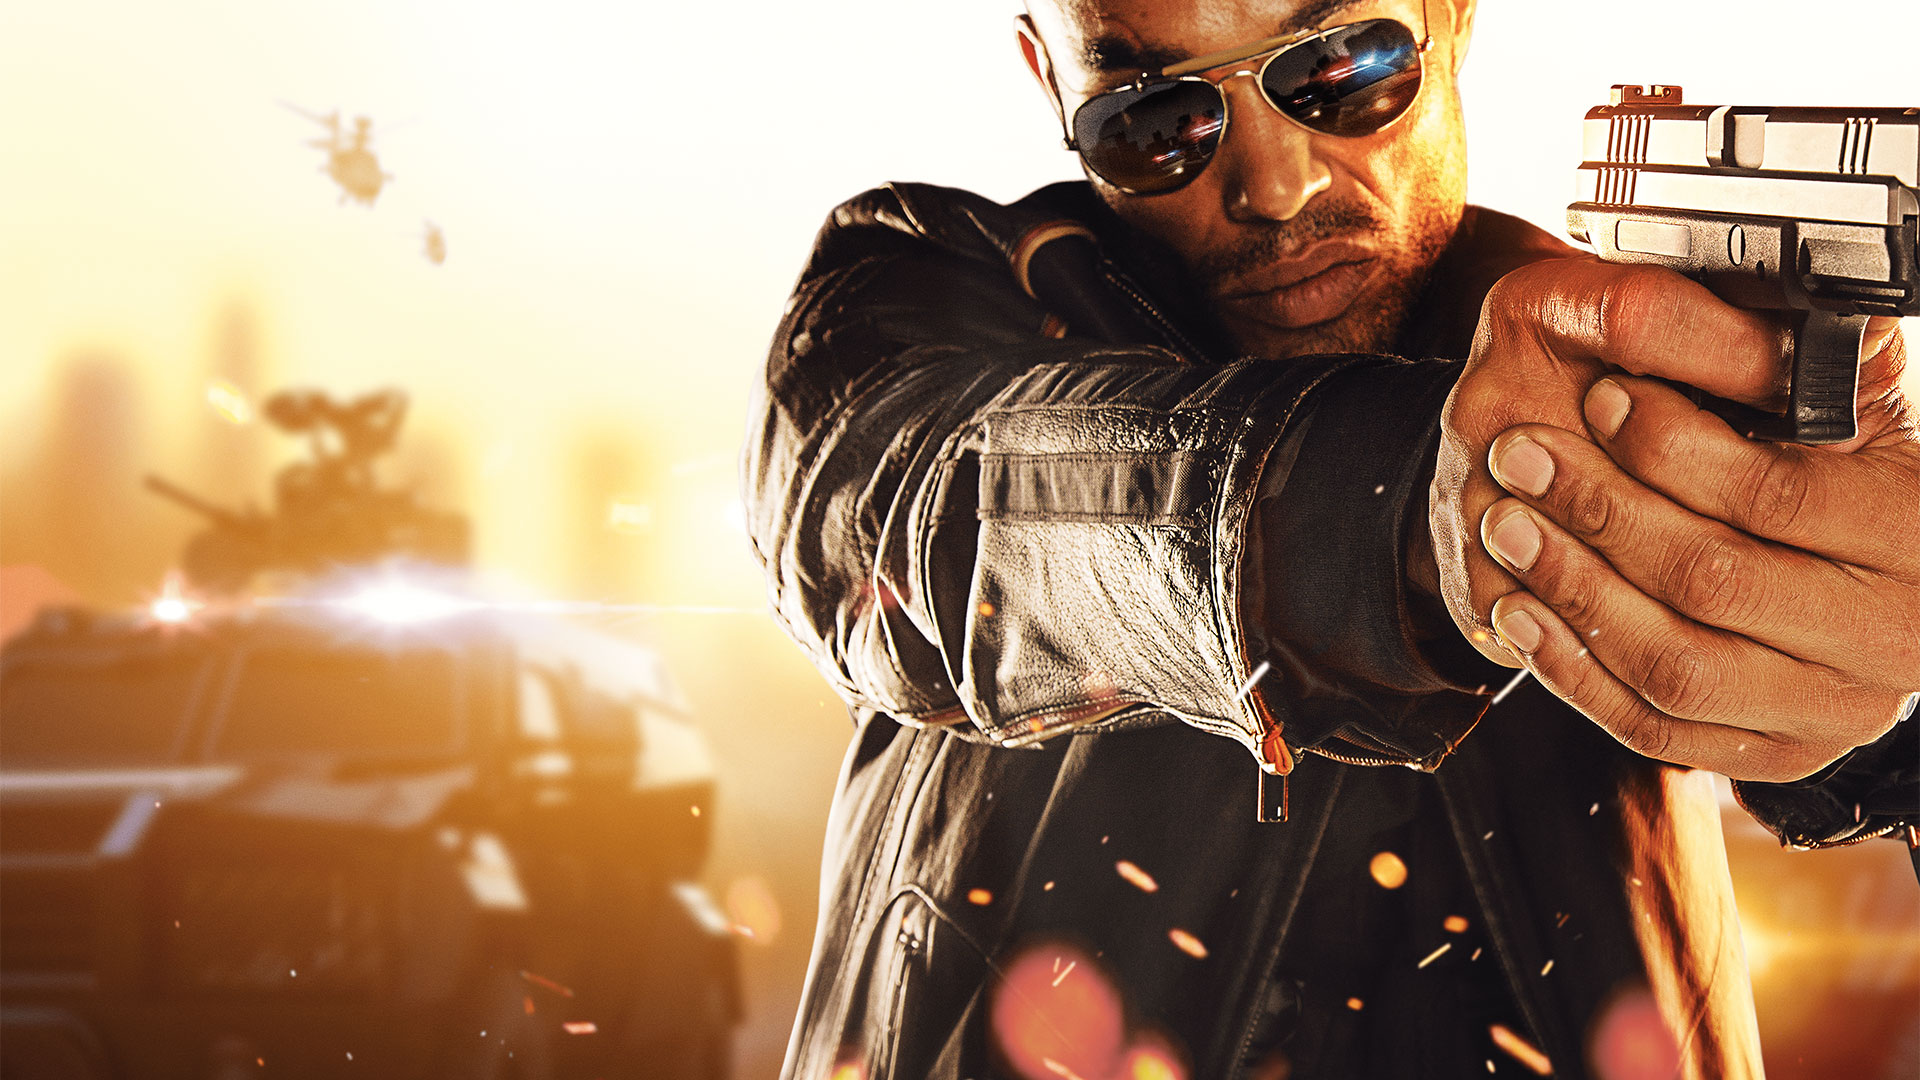 Battlefield Hardline Developer Hit With Quot Small Quot Number Of